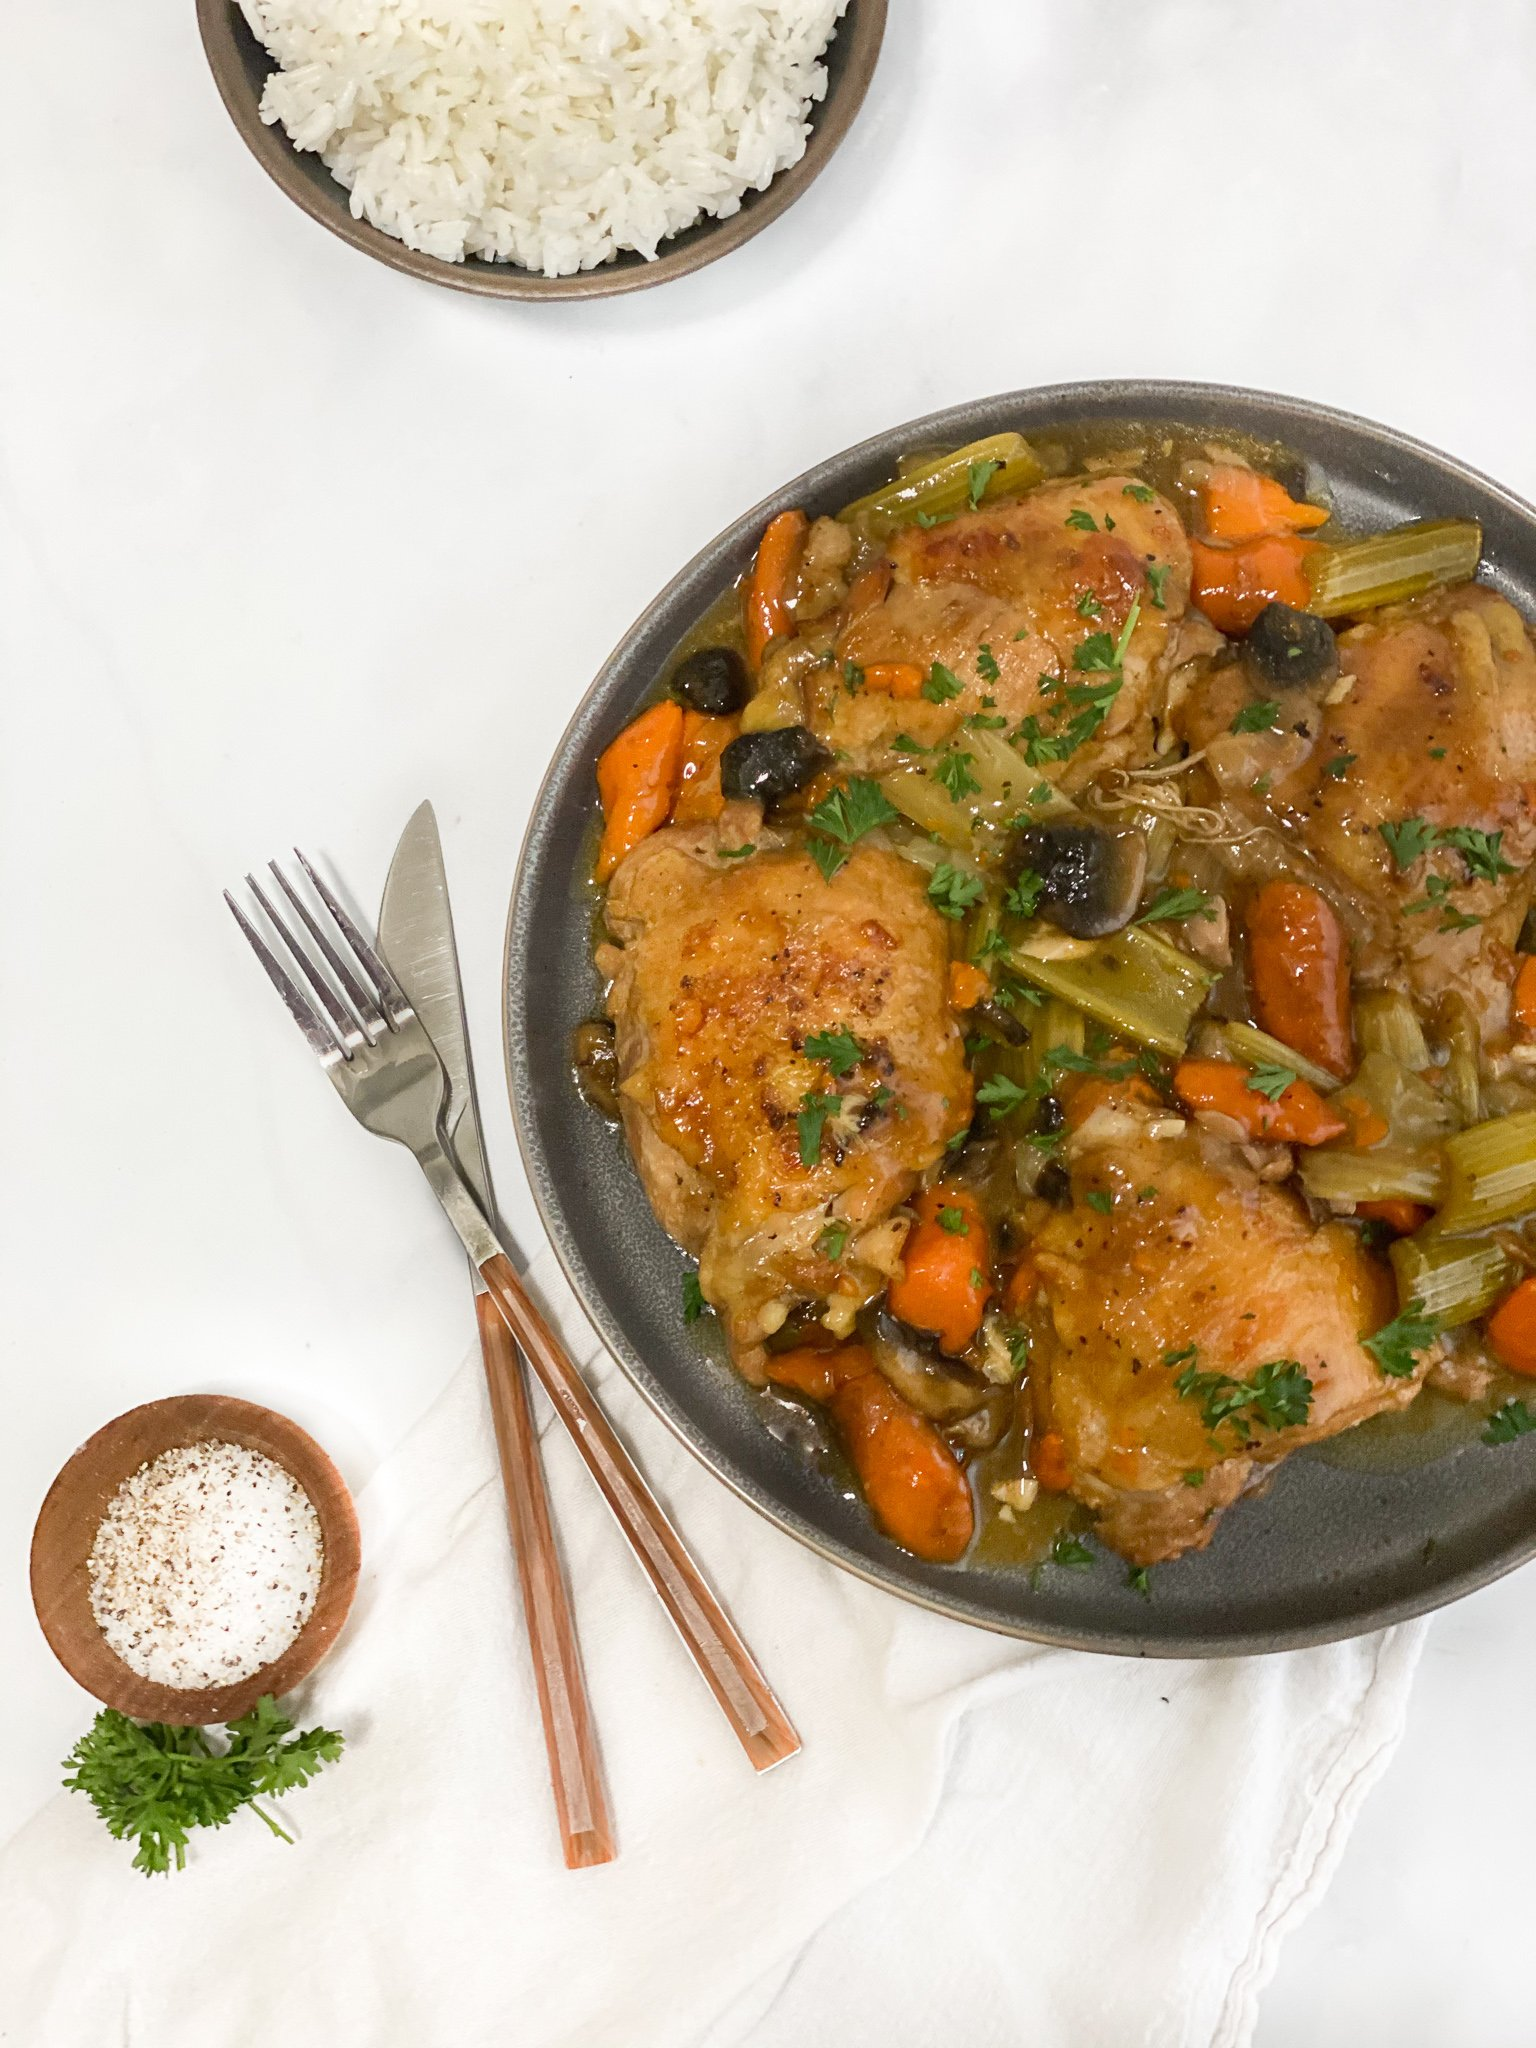 Rustic chicken thighs are sitting on a gray stone plate nestled with the roasted carrots, onions, celery and mushrooms and pan gravy. Sitting above it is a fresh bowl of jasmine rice. There is a small ramekin of salt and pepper and a knife and fork for someone to dig right in.